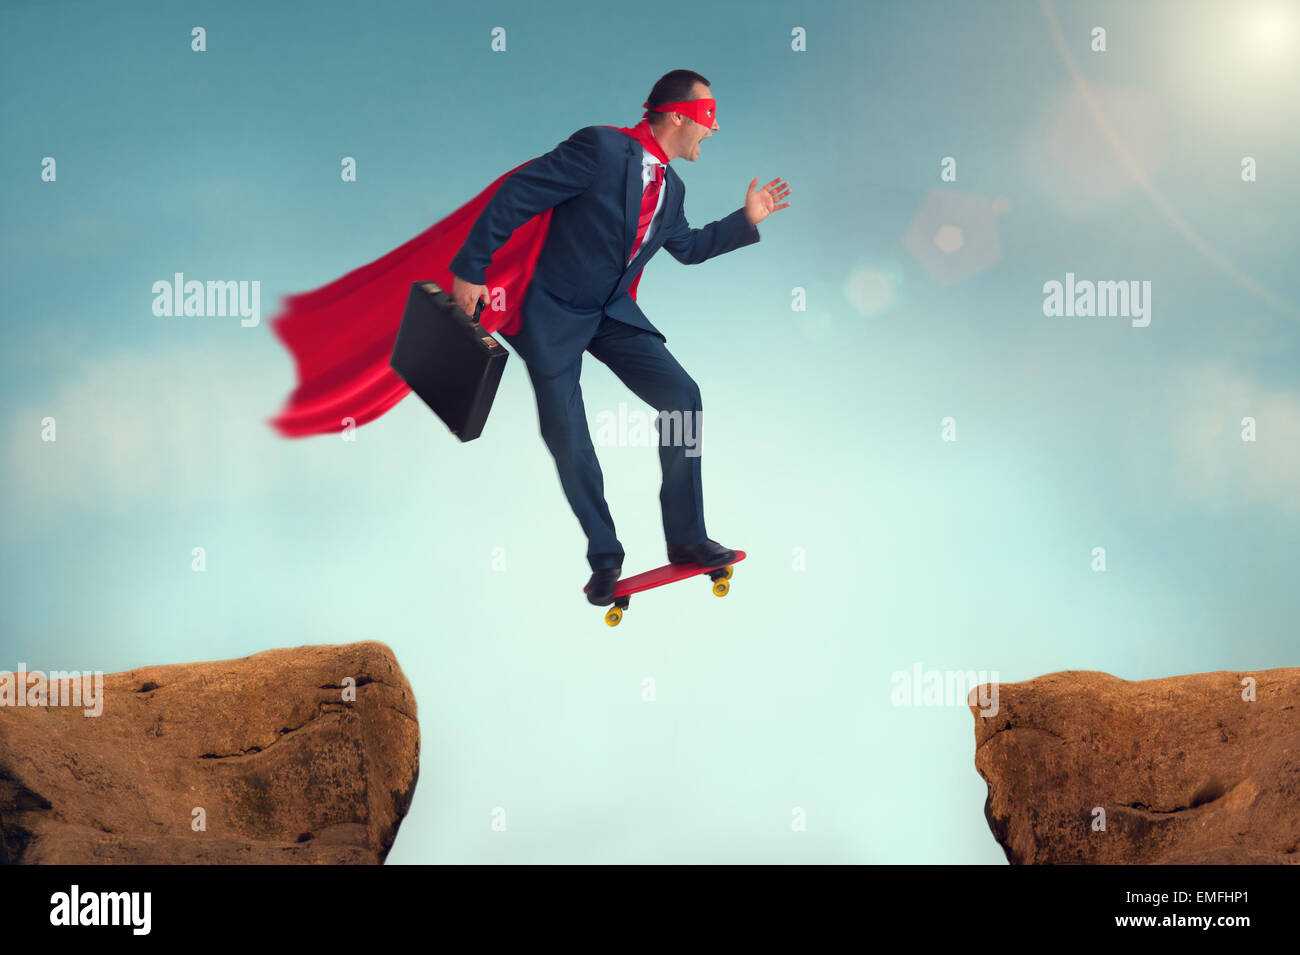 superhero businessman challenge making a risky leap of faith on a skateboard - Stock Image